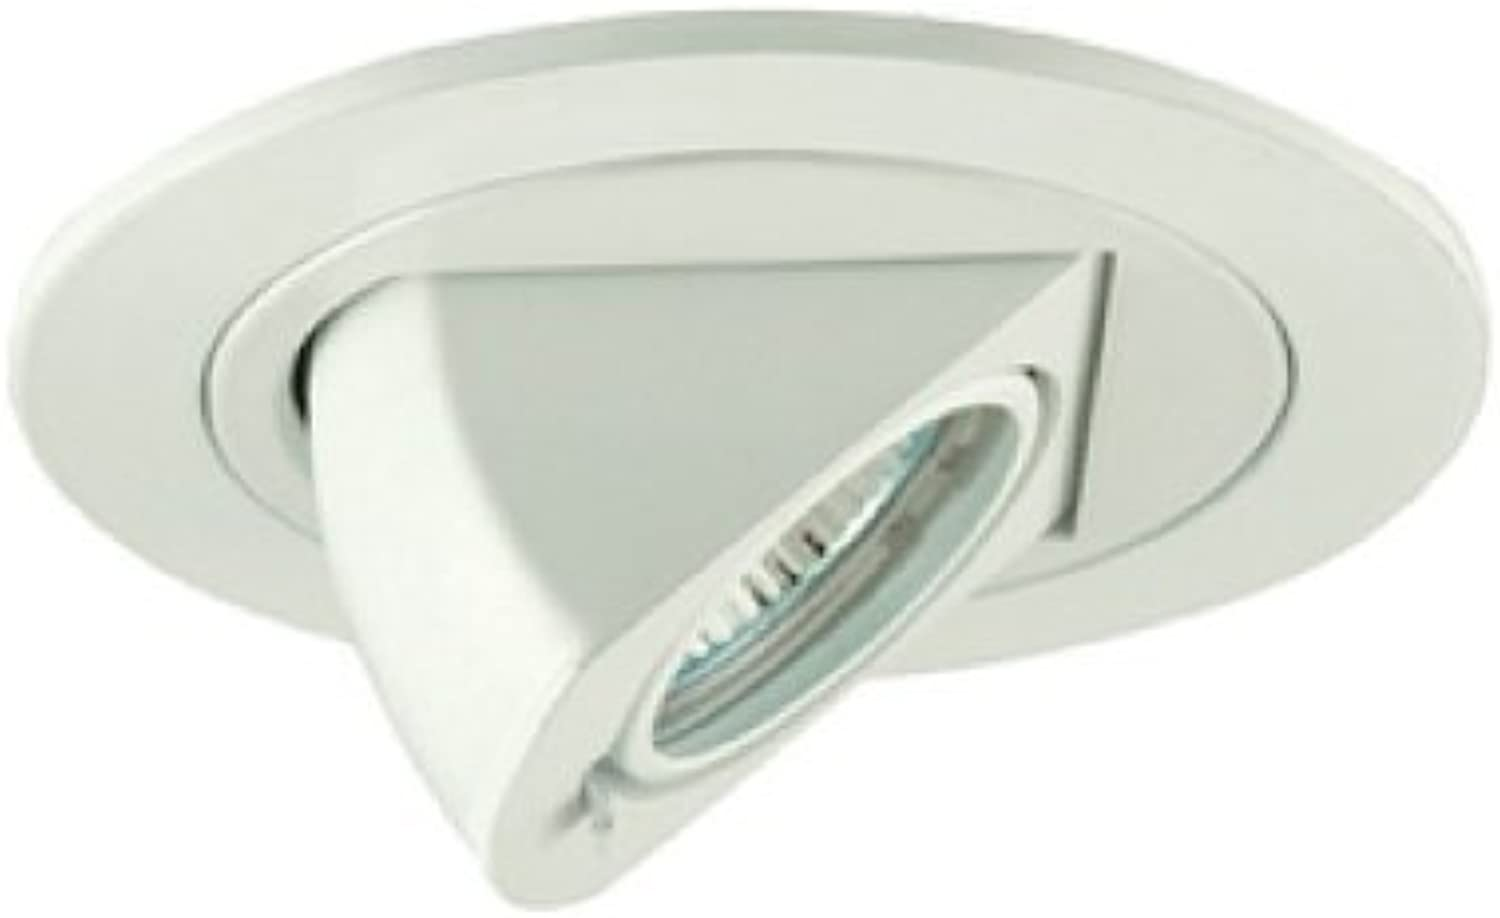 Jesco Lighting TM411WH 4-Inch Aperture Low Voltage Trim Recessed Light, Adjustable Periscope, Weiß Finish by Jesco Lighting Group